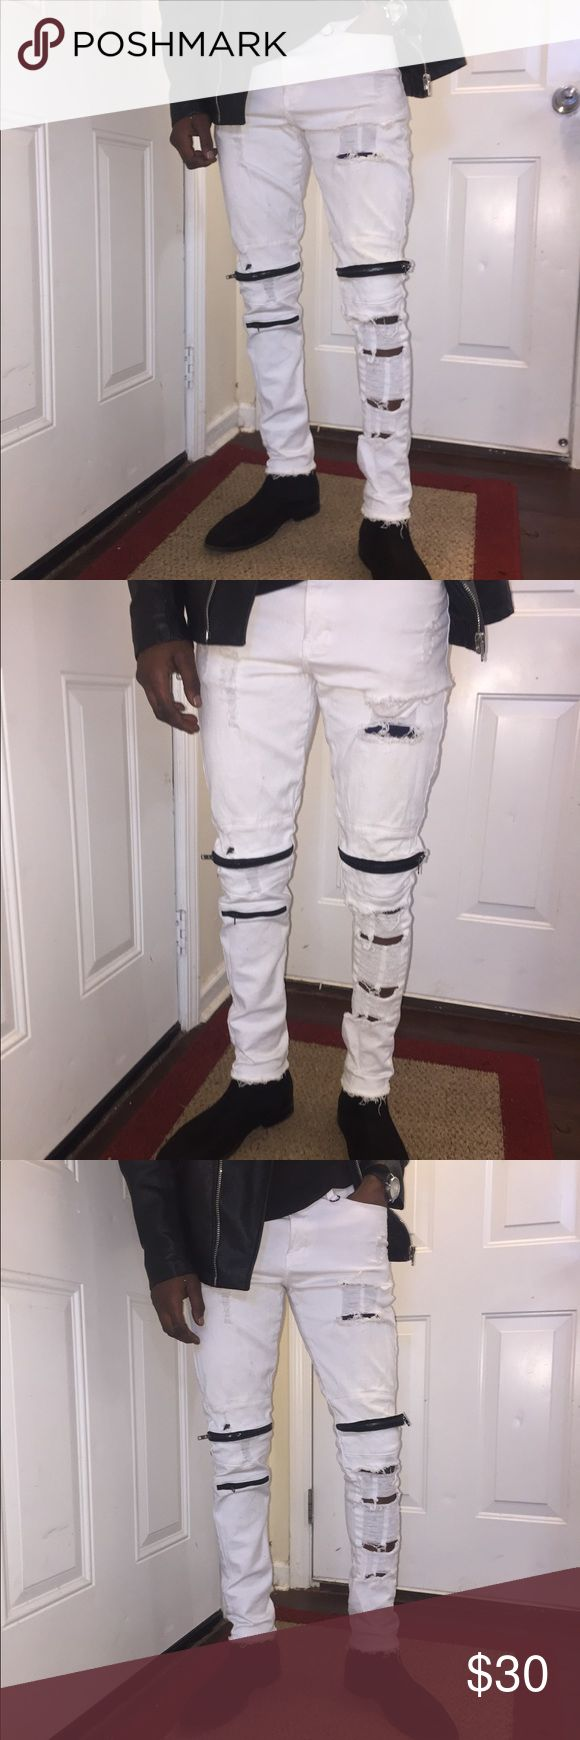 Styled and distressed white Skinny jeans Men's size 30  jeans with some added flavor styled and distressed by your truly Jeans Skinny